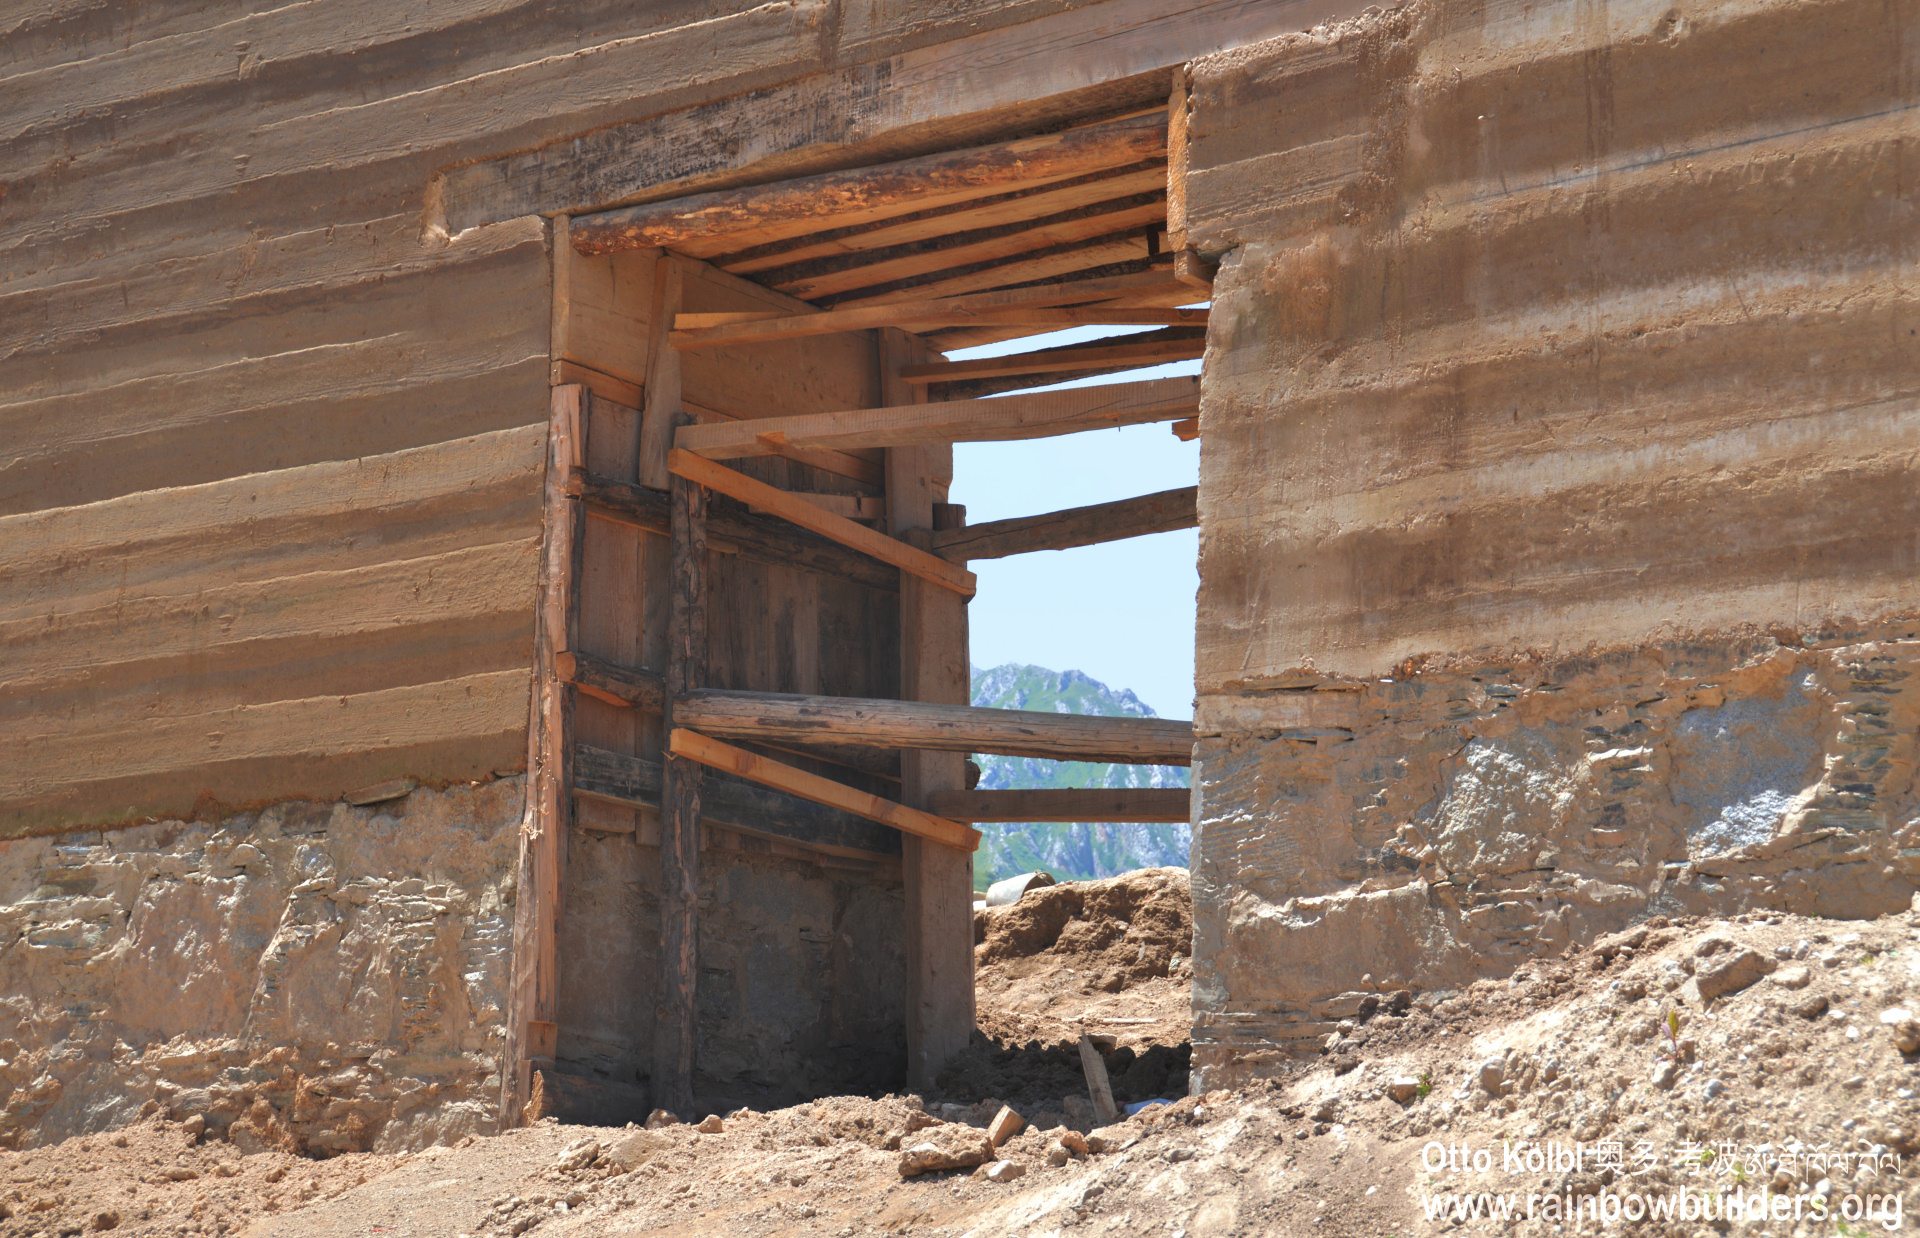 You can still see the various layers of rammed earth.